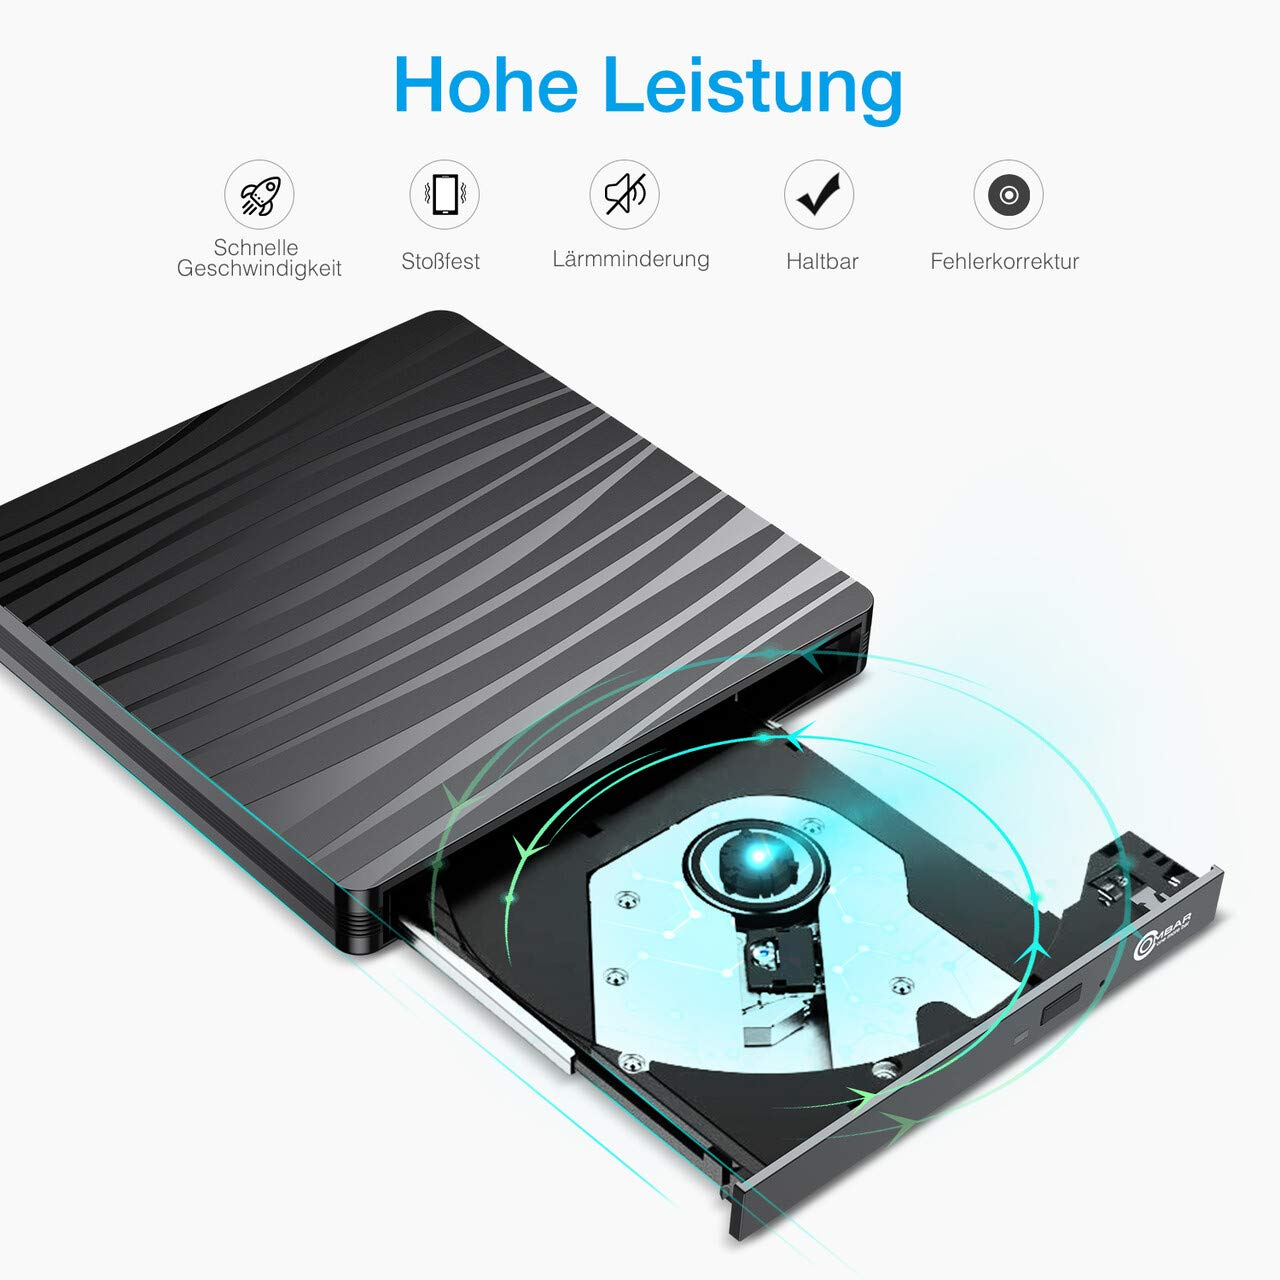 OMBAR Extenes CD/DVD Laufwerk Brenner, 2 in 1 External CD/DVD Drive mit USB 3.0/Type-C für Desktops, Laptops, MacBook, das System eignet Windows XP / 2003 / Vista / 7/8.1/10, Linux, Mac OS